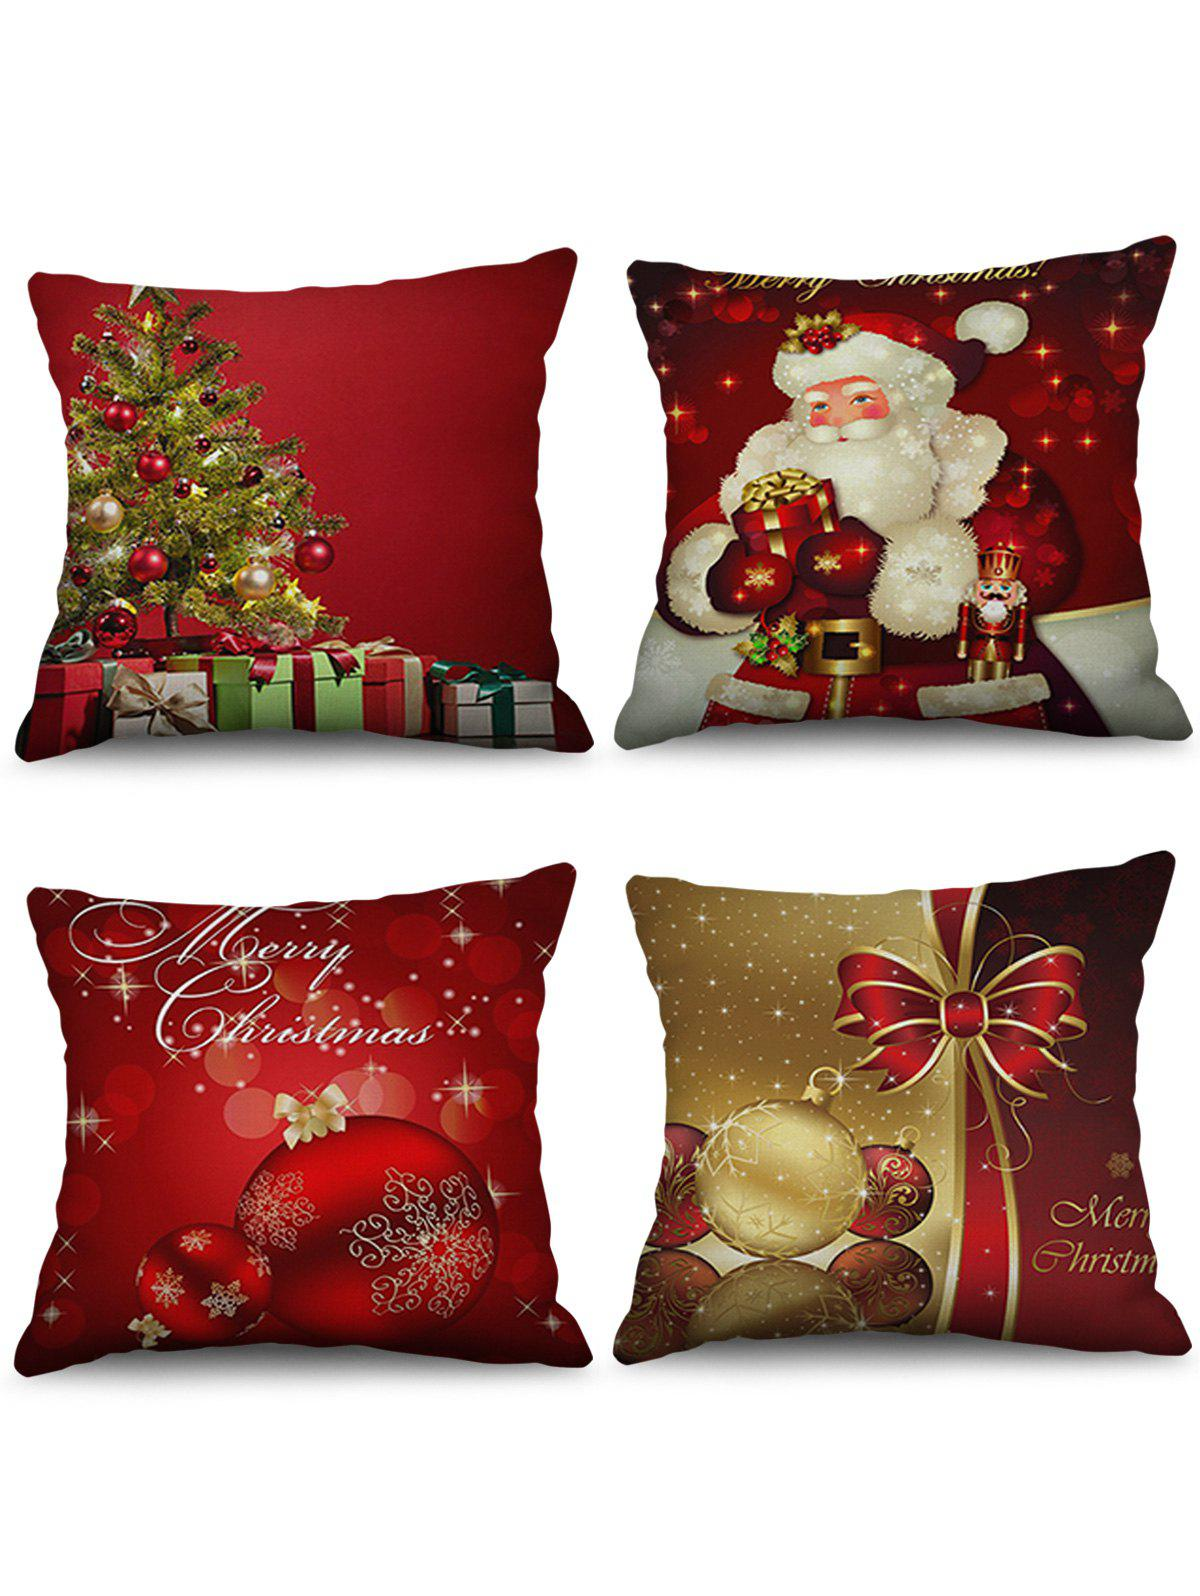 Shops Christmas Decorations Printed Throw Pillow Cases